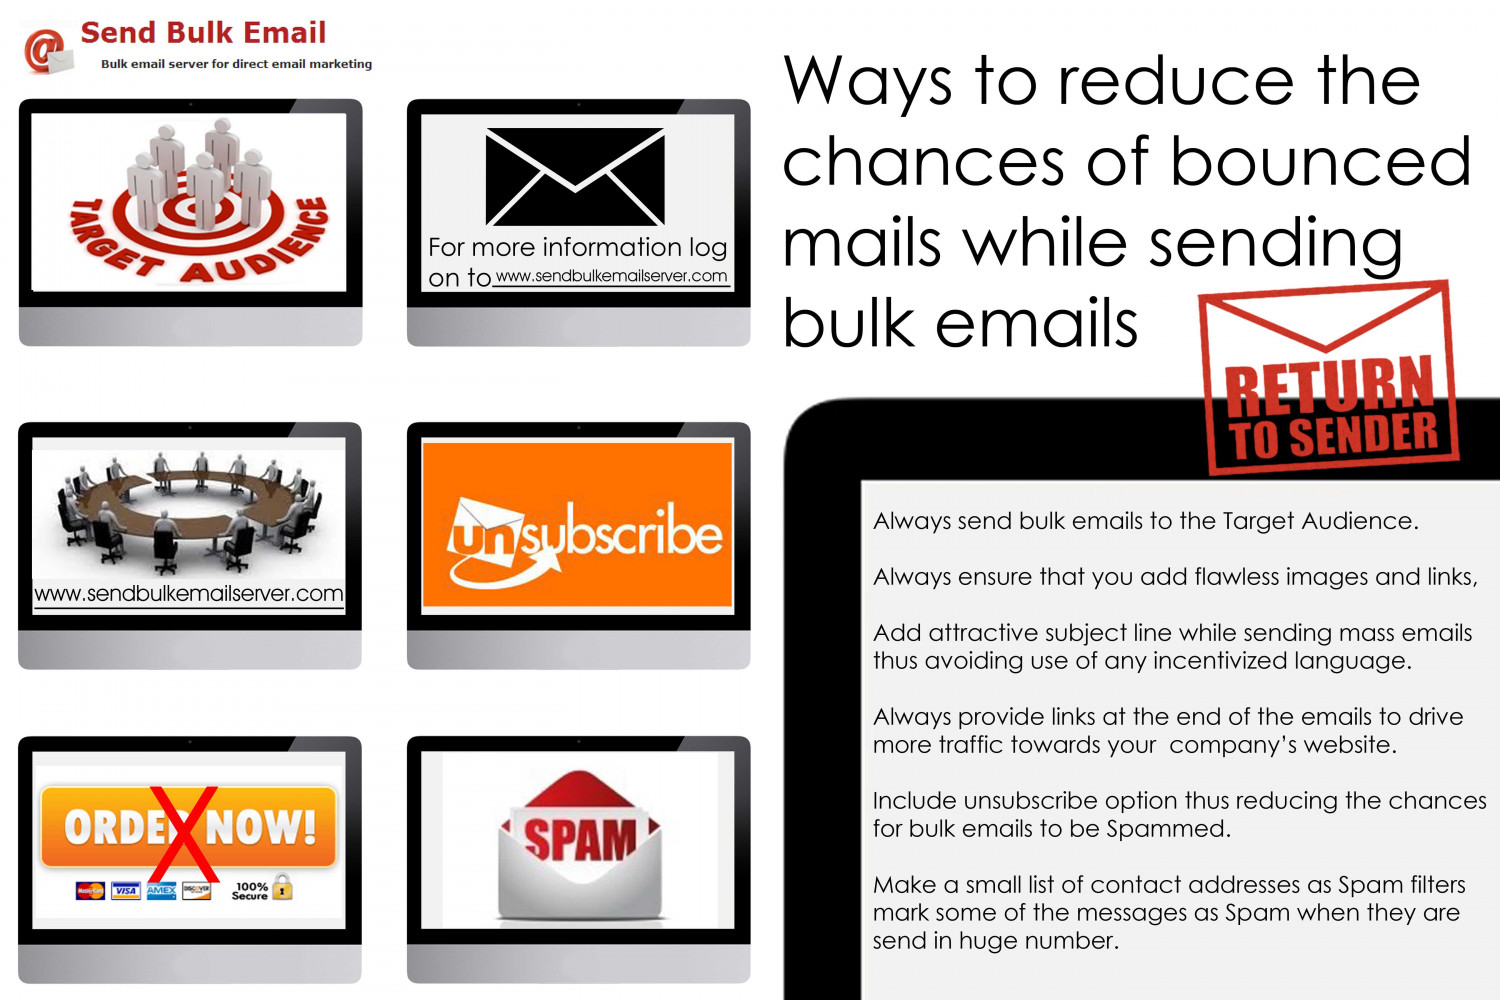 Adopt ways to reduce the chances of bounced mails while sending bulk emails Infographic